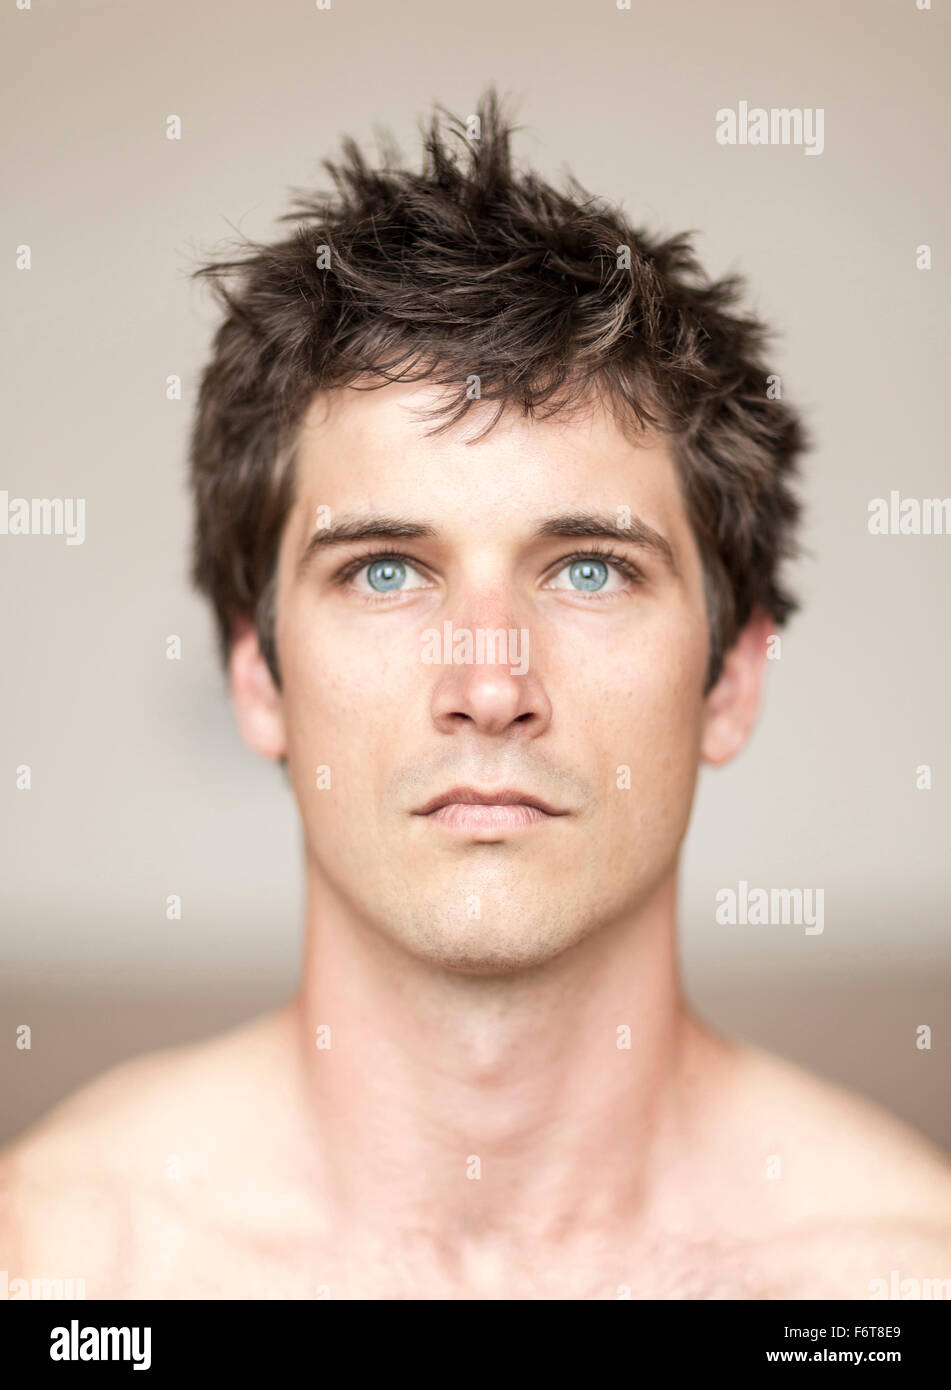 Serious man with messy hair - Stock Image